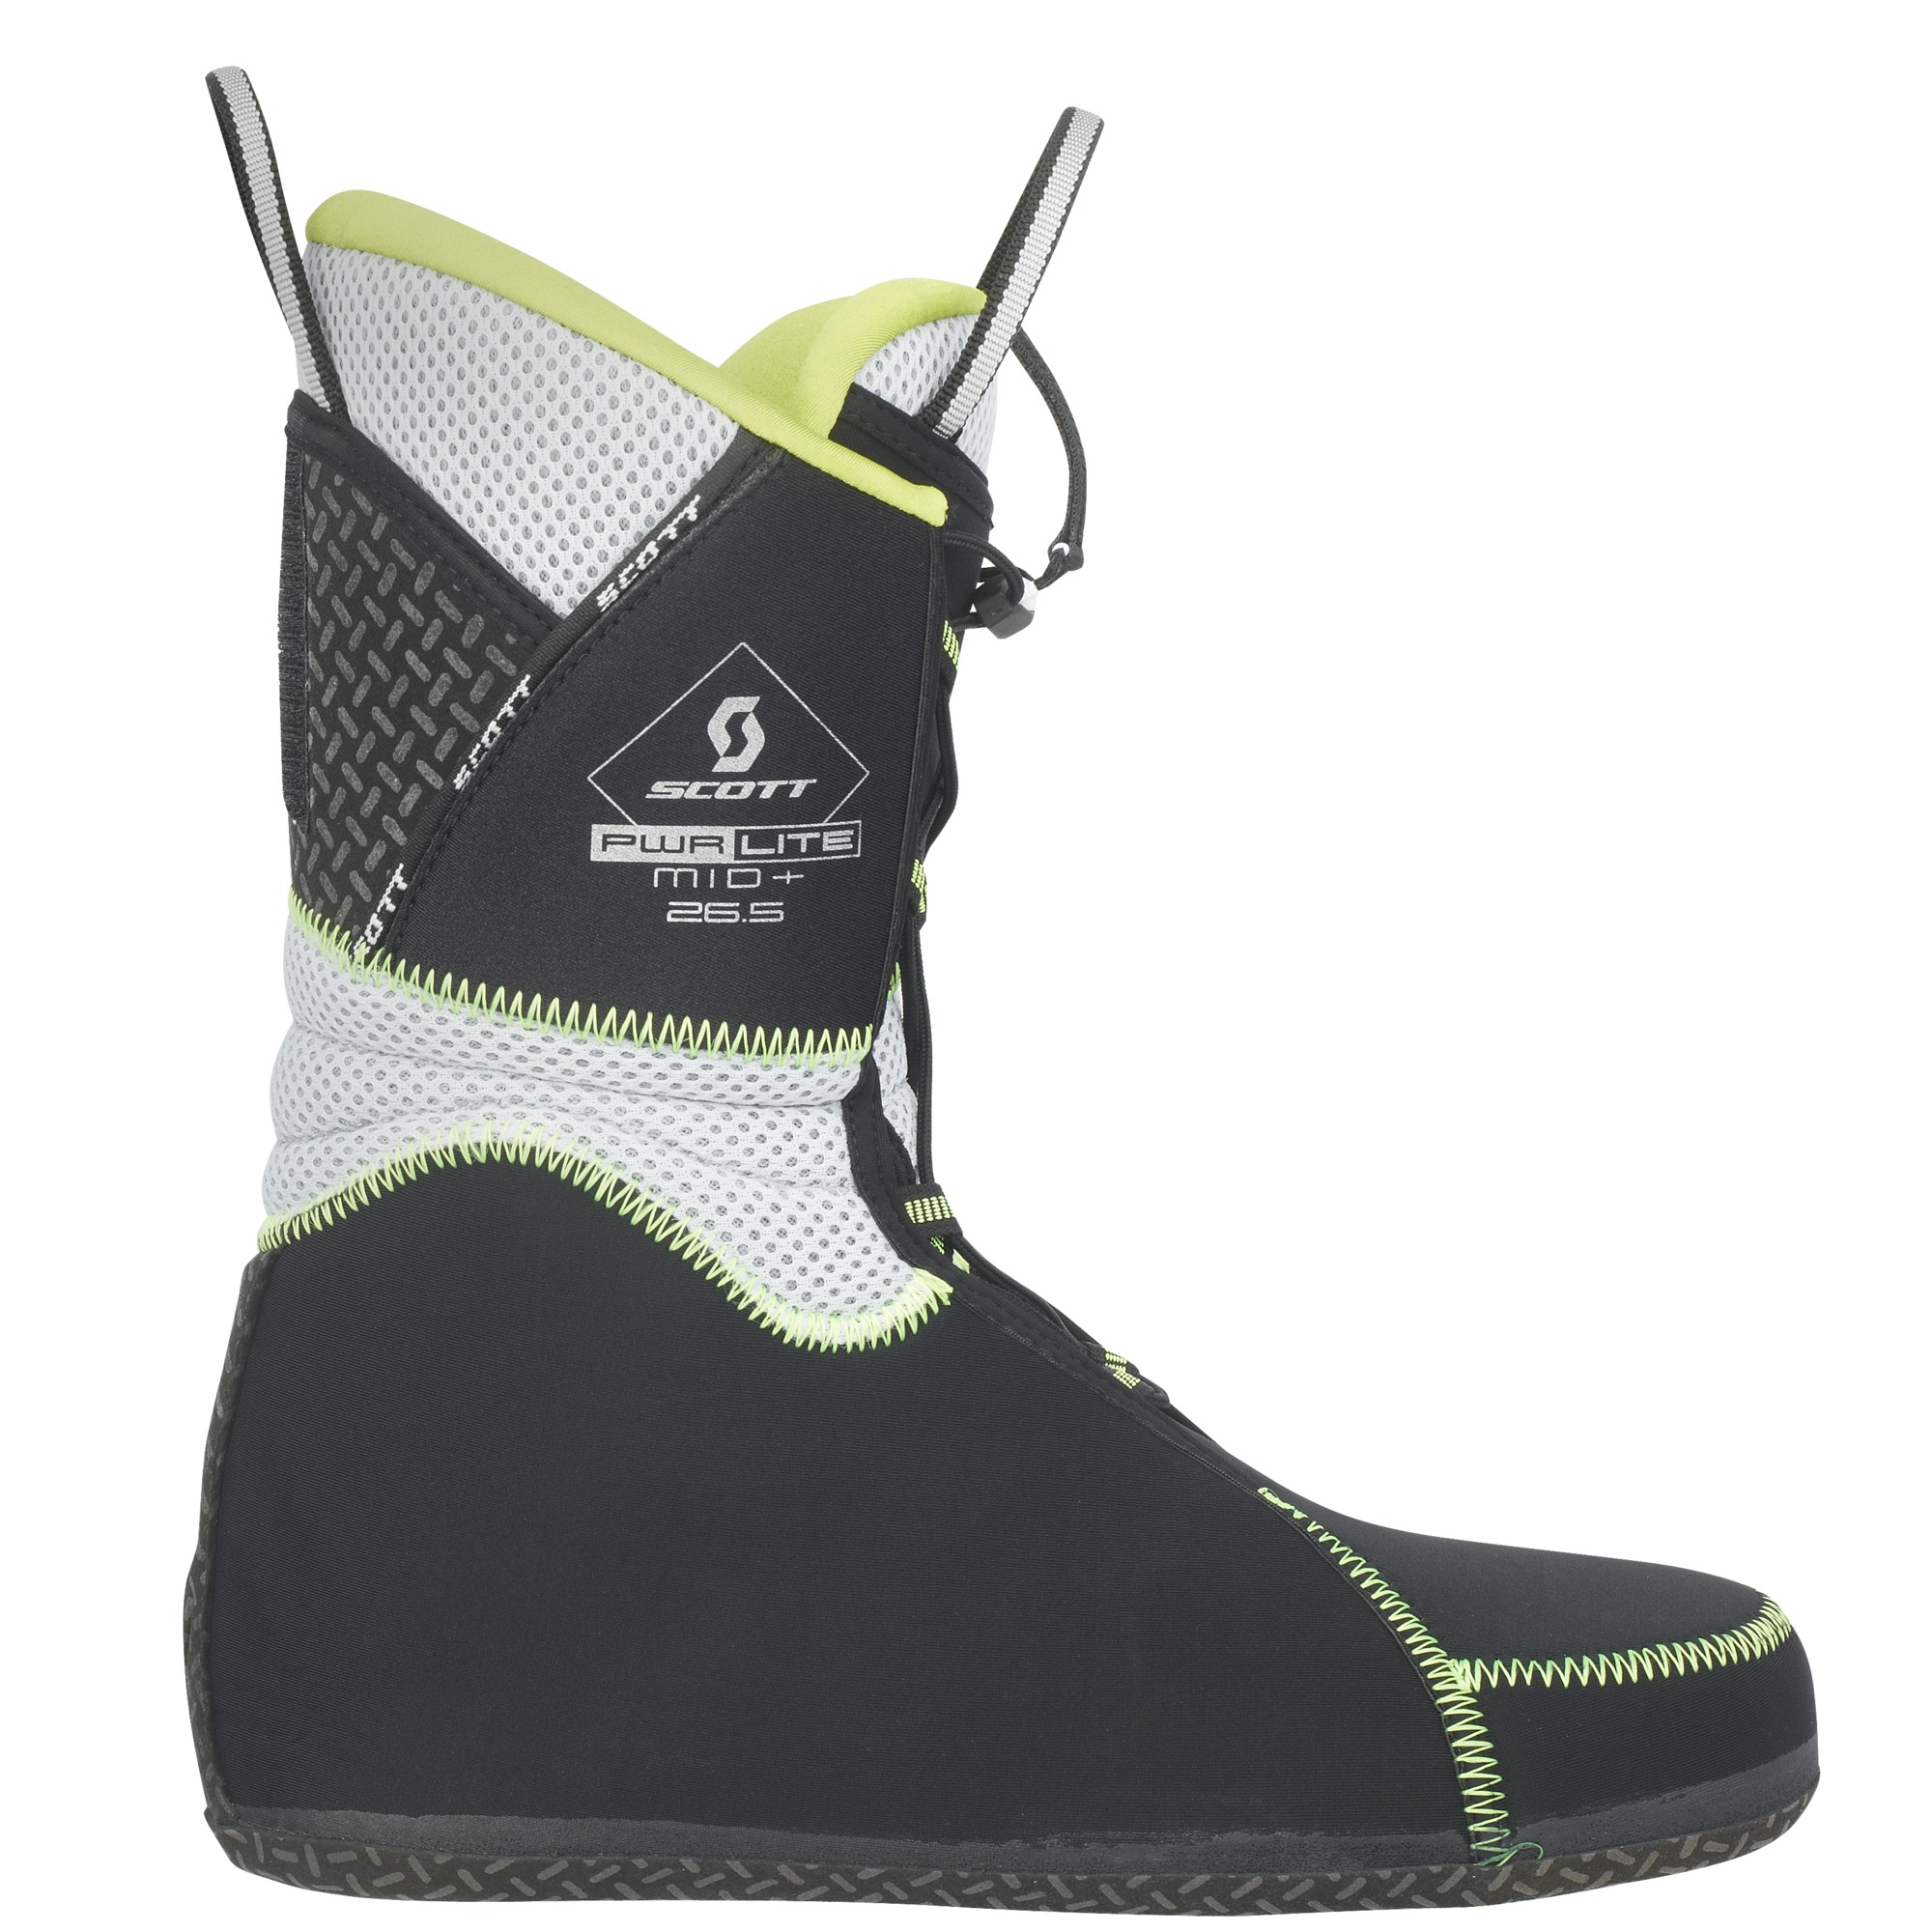 SCOTT Orbit II Carbon Ski Boot